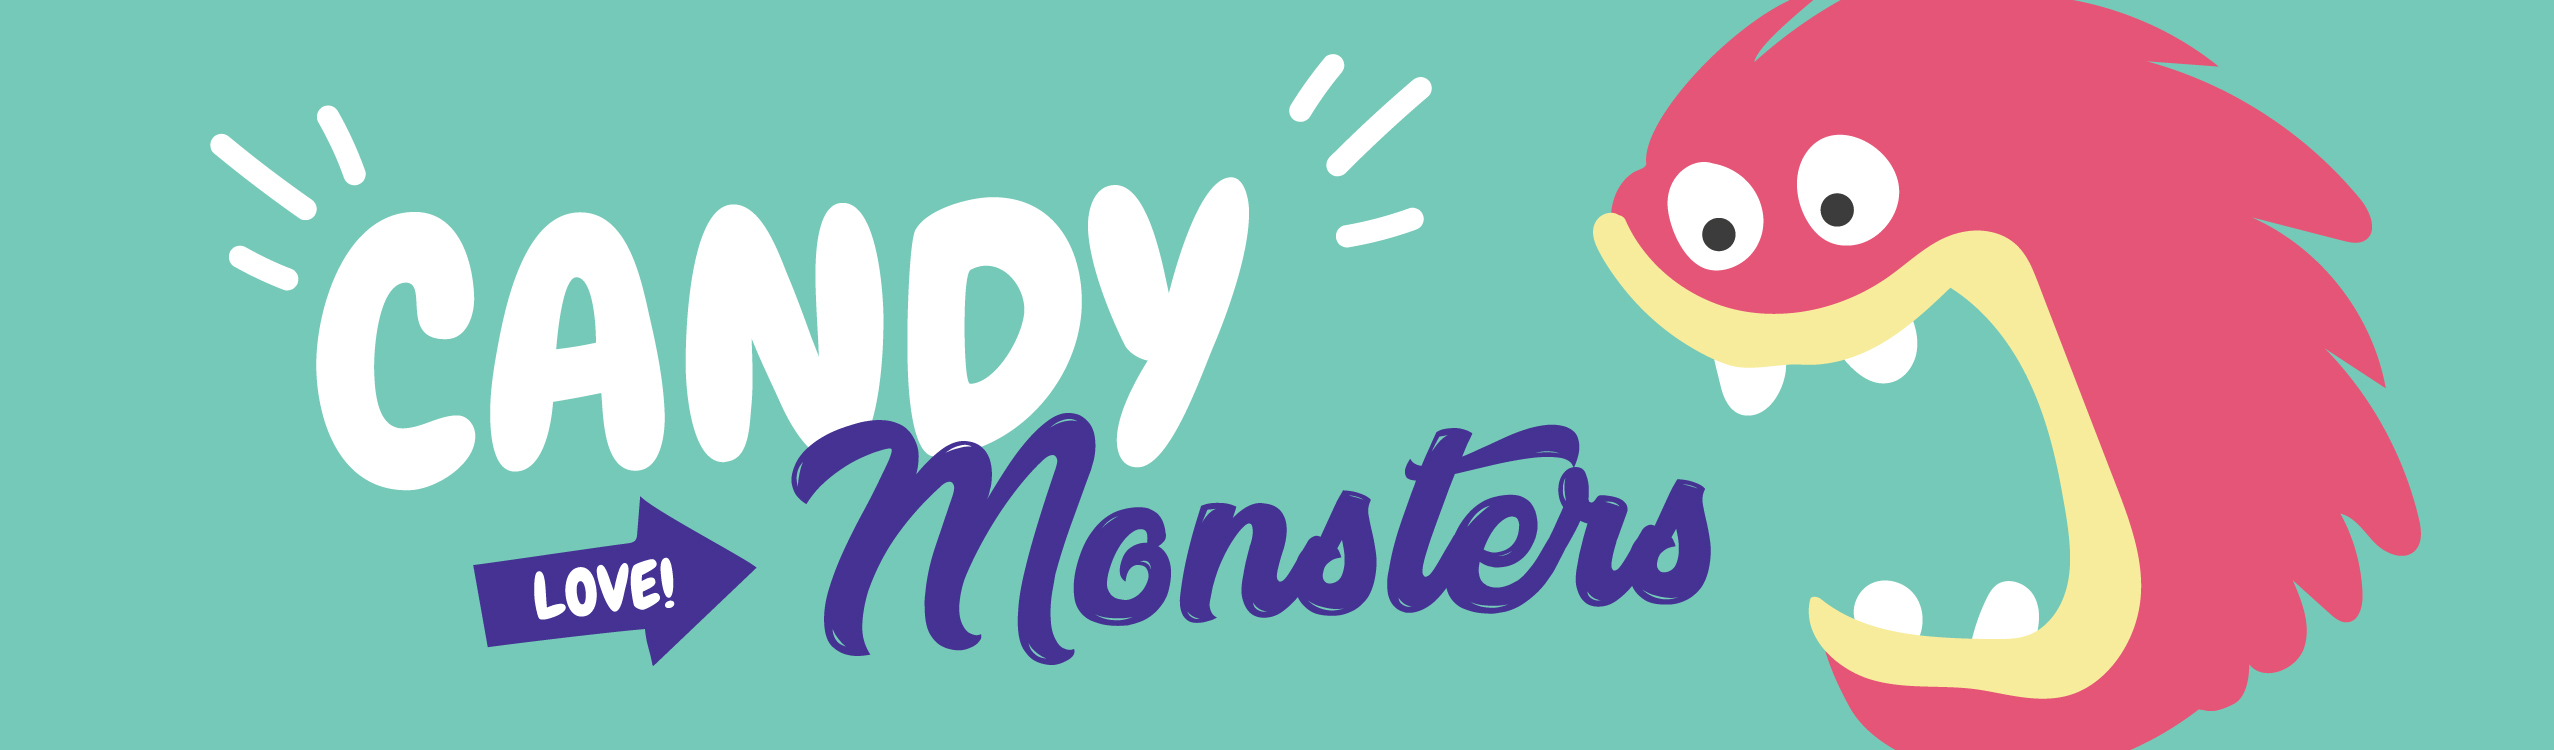 Candy_Monsters_TOP